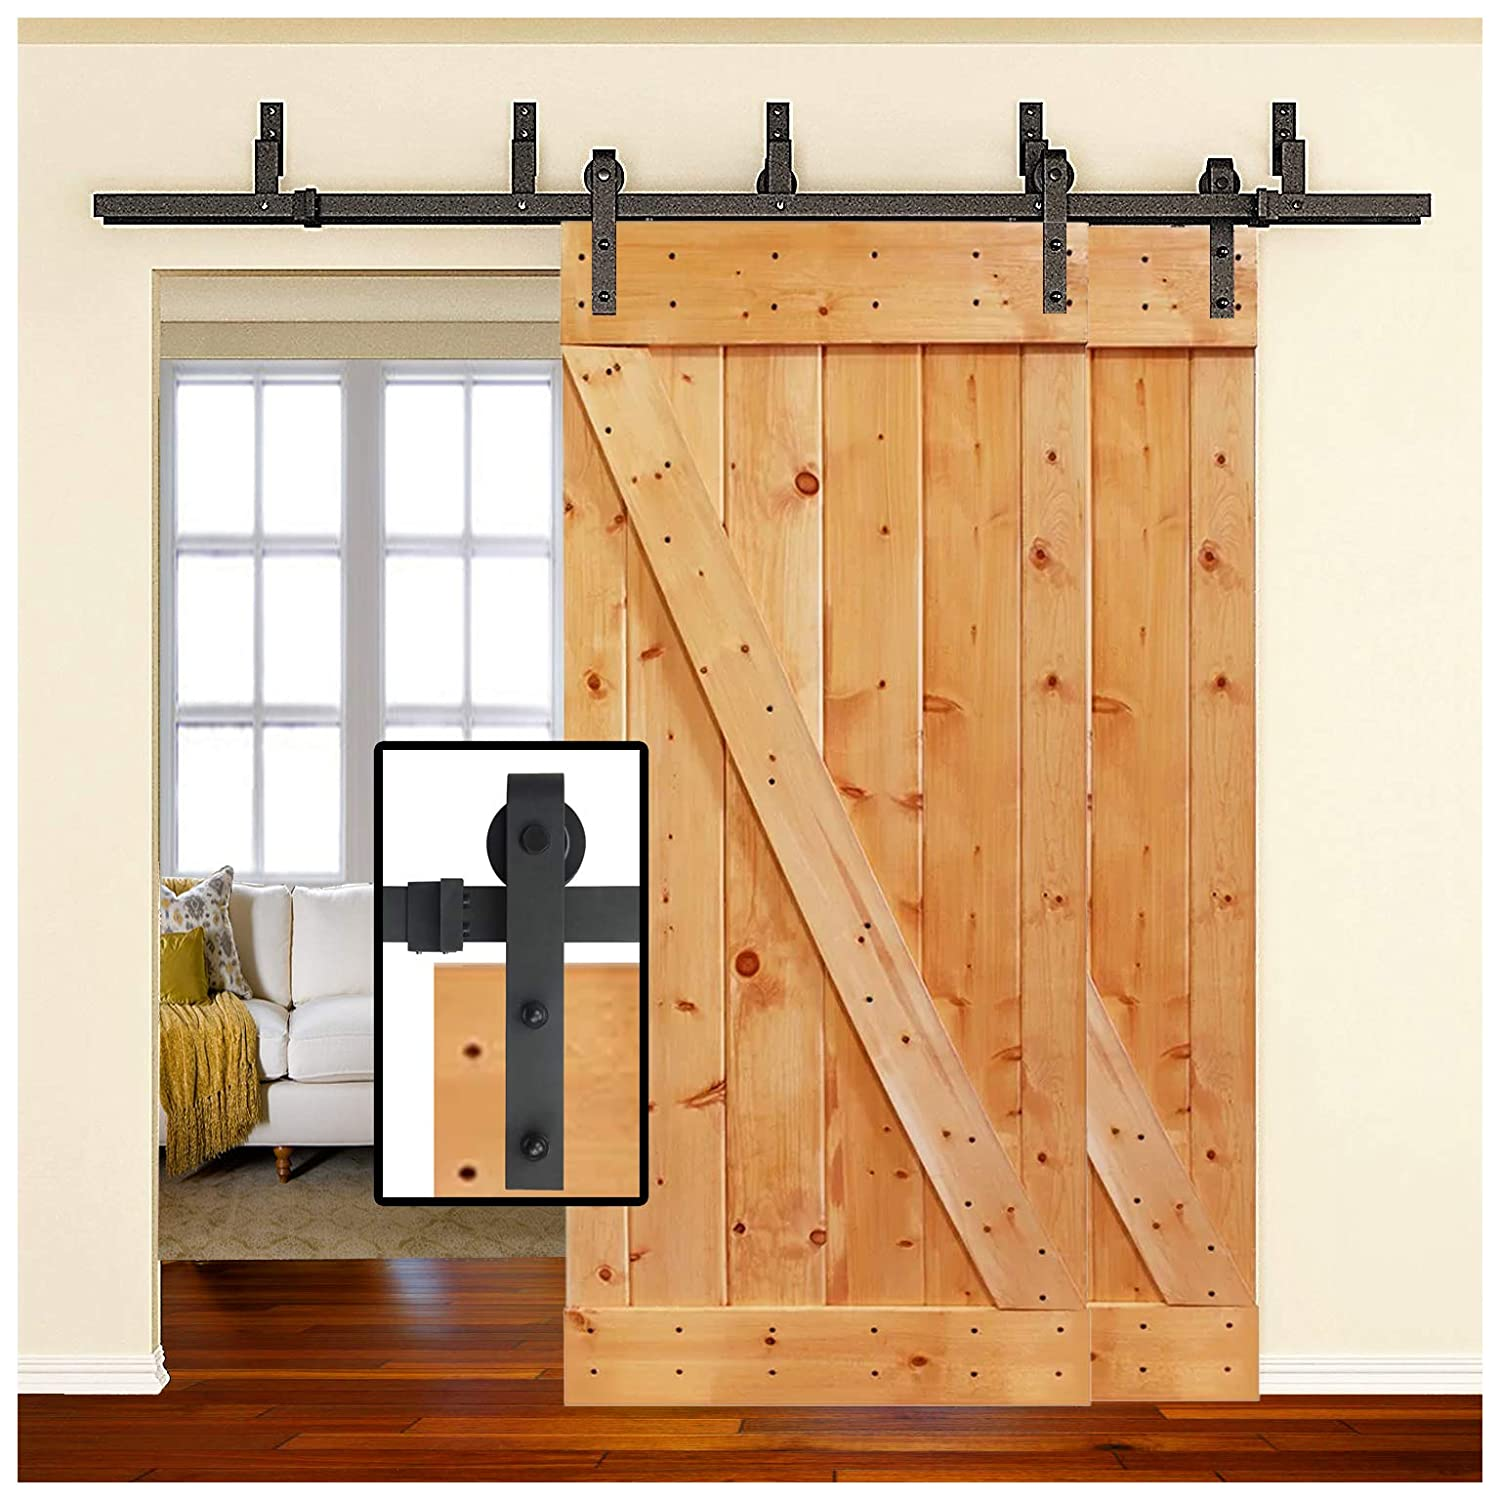 6-Foot Sliding Barn Door Bypass Hardware |Heavy Duty| Double Door| Powder  Coated Frosted Black | J Shape Hangers| 2 x 6 Foot Solid Rails |